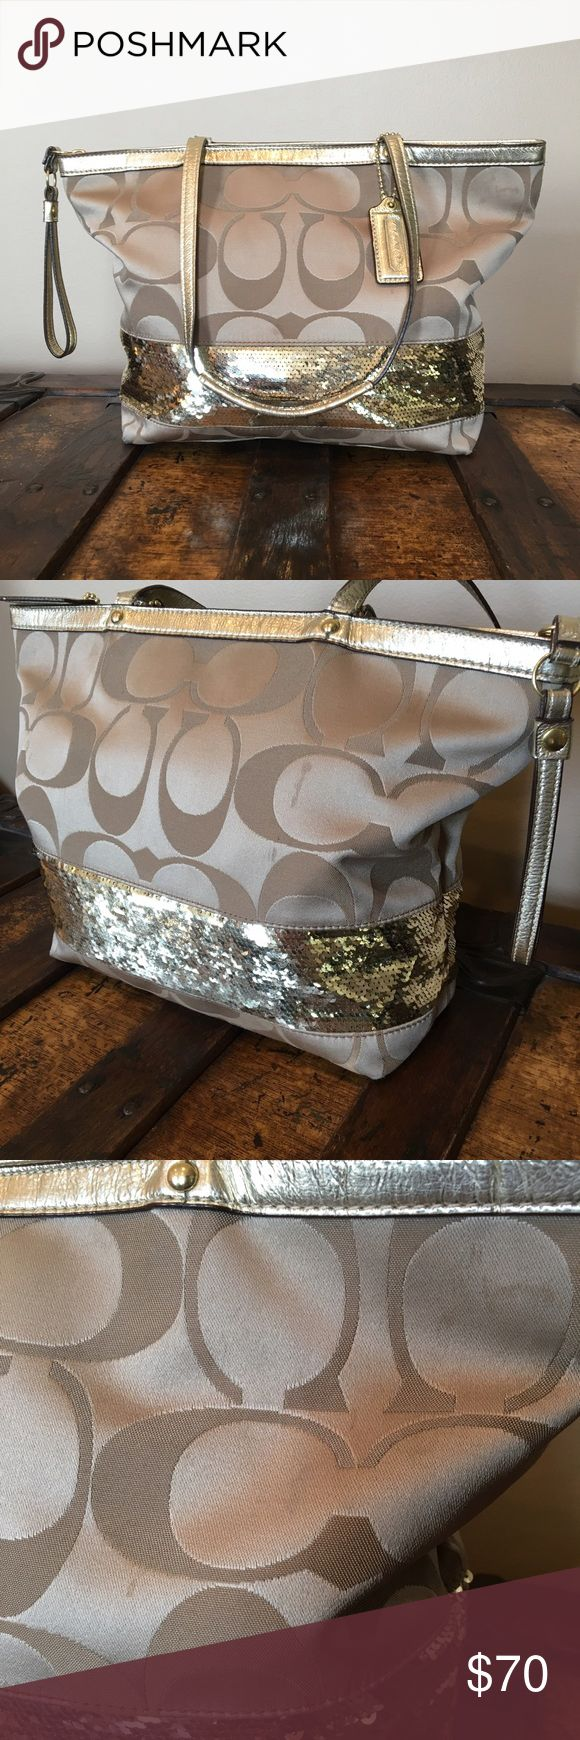 Gold Sequin Coach Bag Gold Sequin Coach Bag. Good condition with a few small marks on the front and back side. Some of the sequins want to turn up, but can be flipped back down. None are missing. Inside of bag is clean! Zip closer. Please ask if you have any questions! Not included in bundle discount. Coach Bags Shoulder Bags